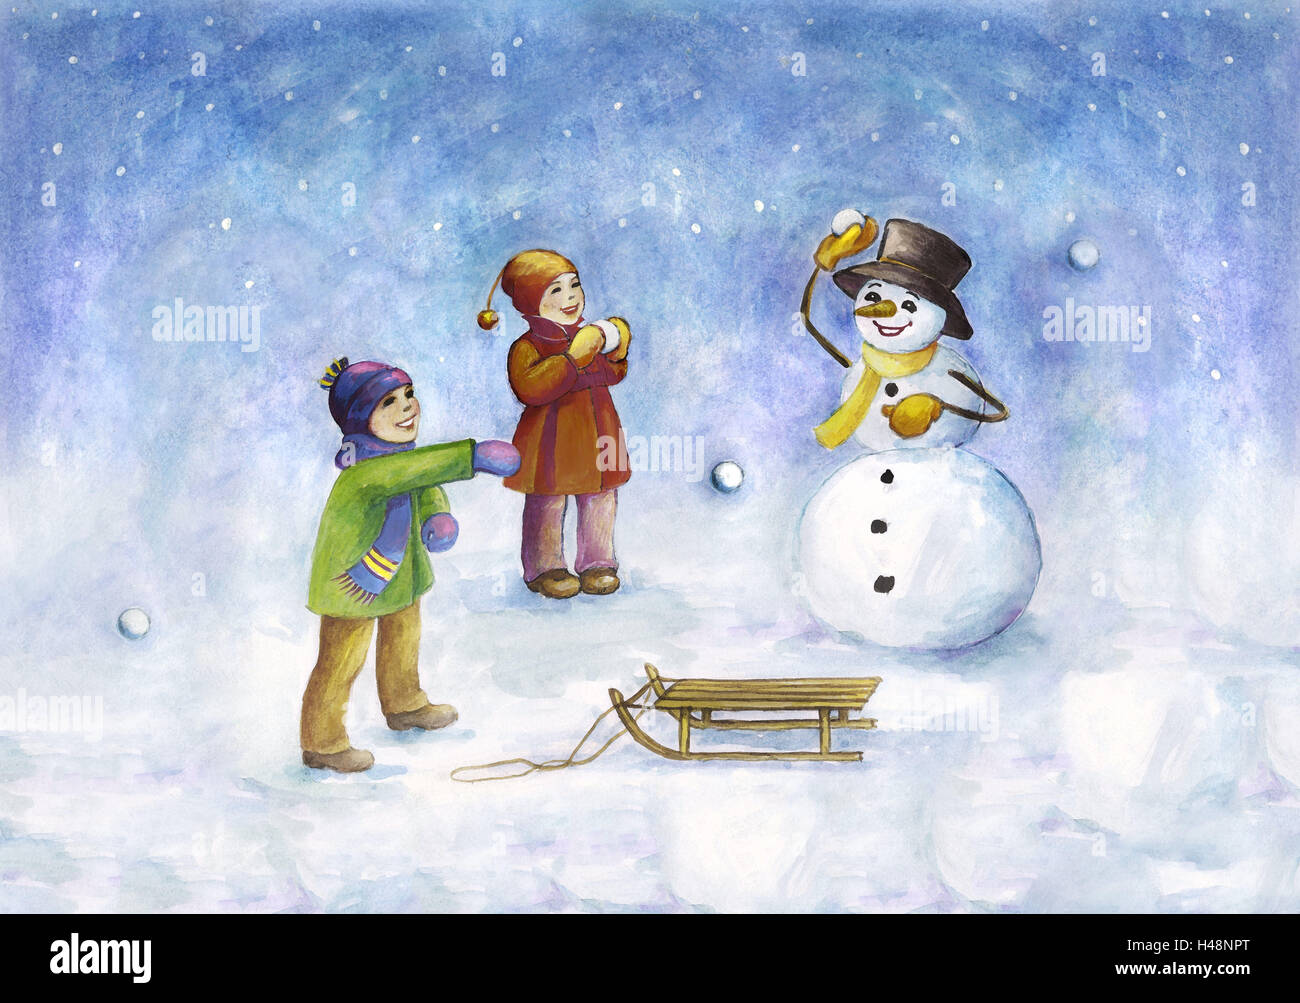 Subscription, children, snowman, snowball battle, snowing, illustration, painting, boy, girl, siblings, winter clothes, - Stock Image